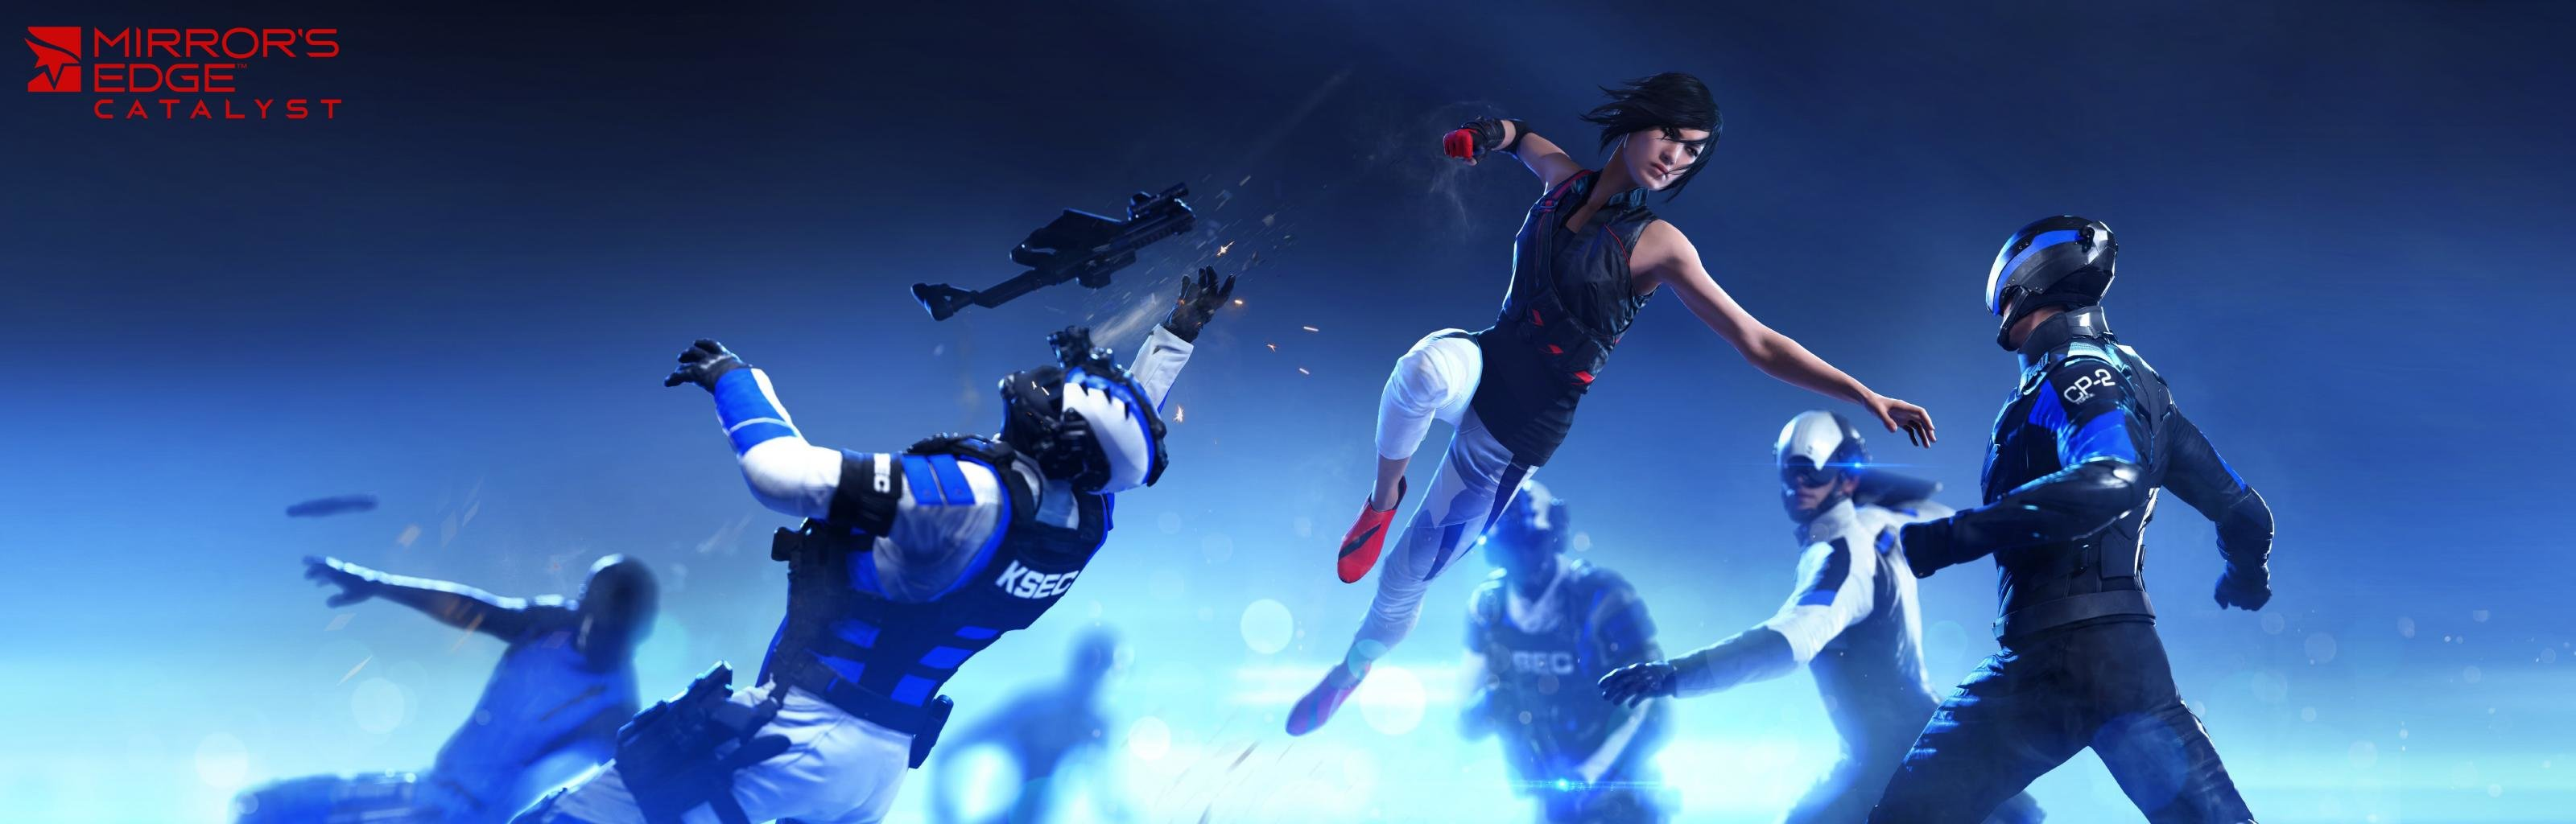 Download dual screen 3200x1024 Mirror's Edge Catalyst computer background ID:219575 for free